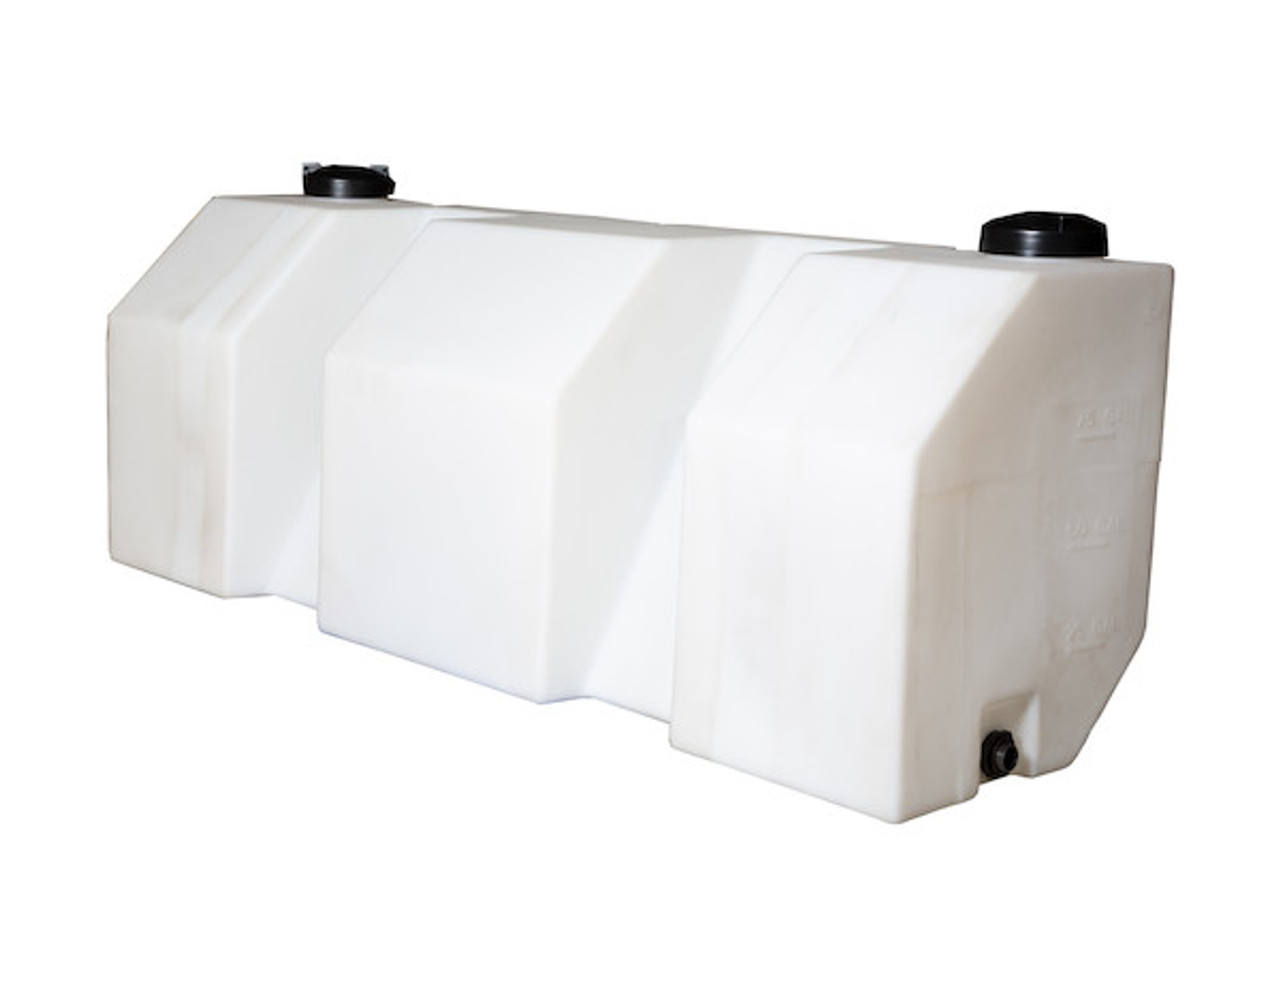 LS4 Buyers SaltDogg 12 VDC Pre-Wet Kit With One 105-Gallon Poly V-Box Mount Reservoir Picture # 6